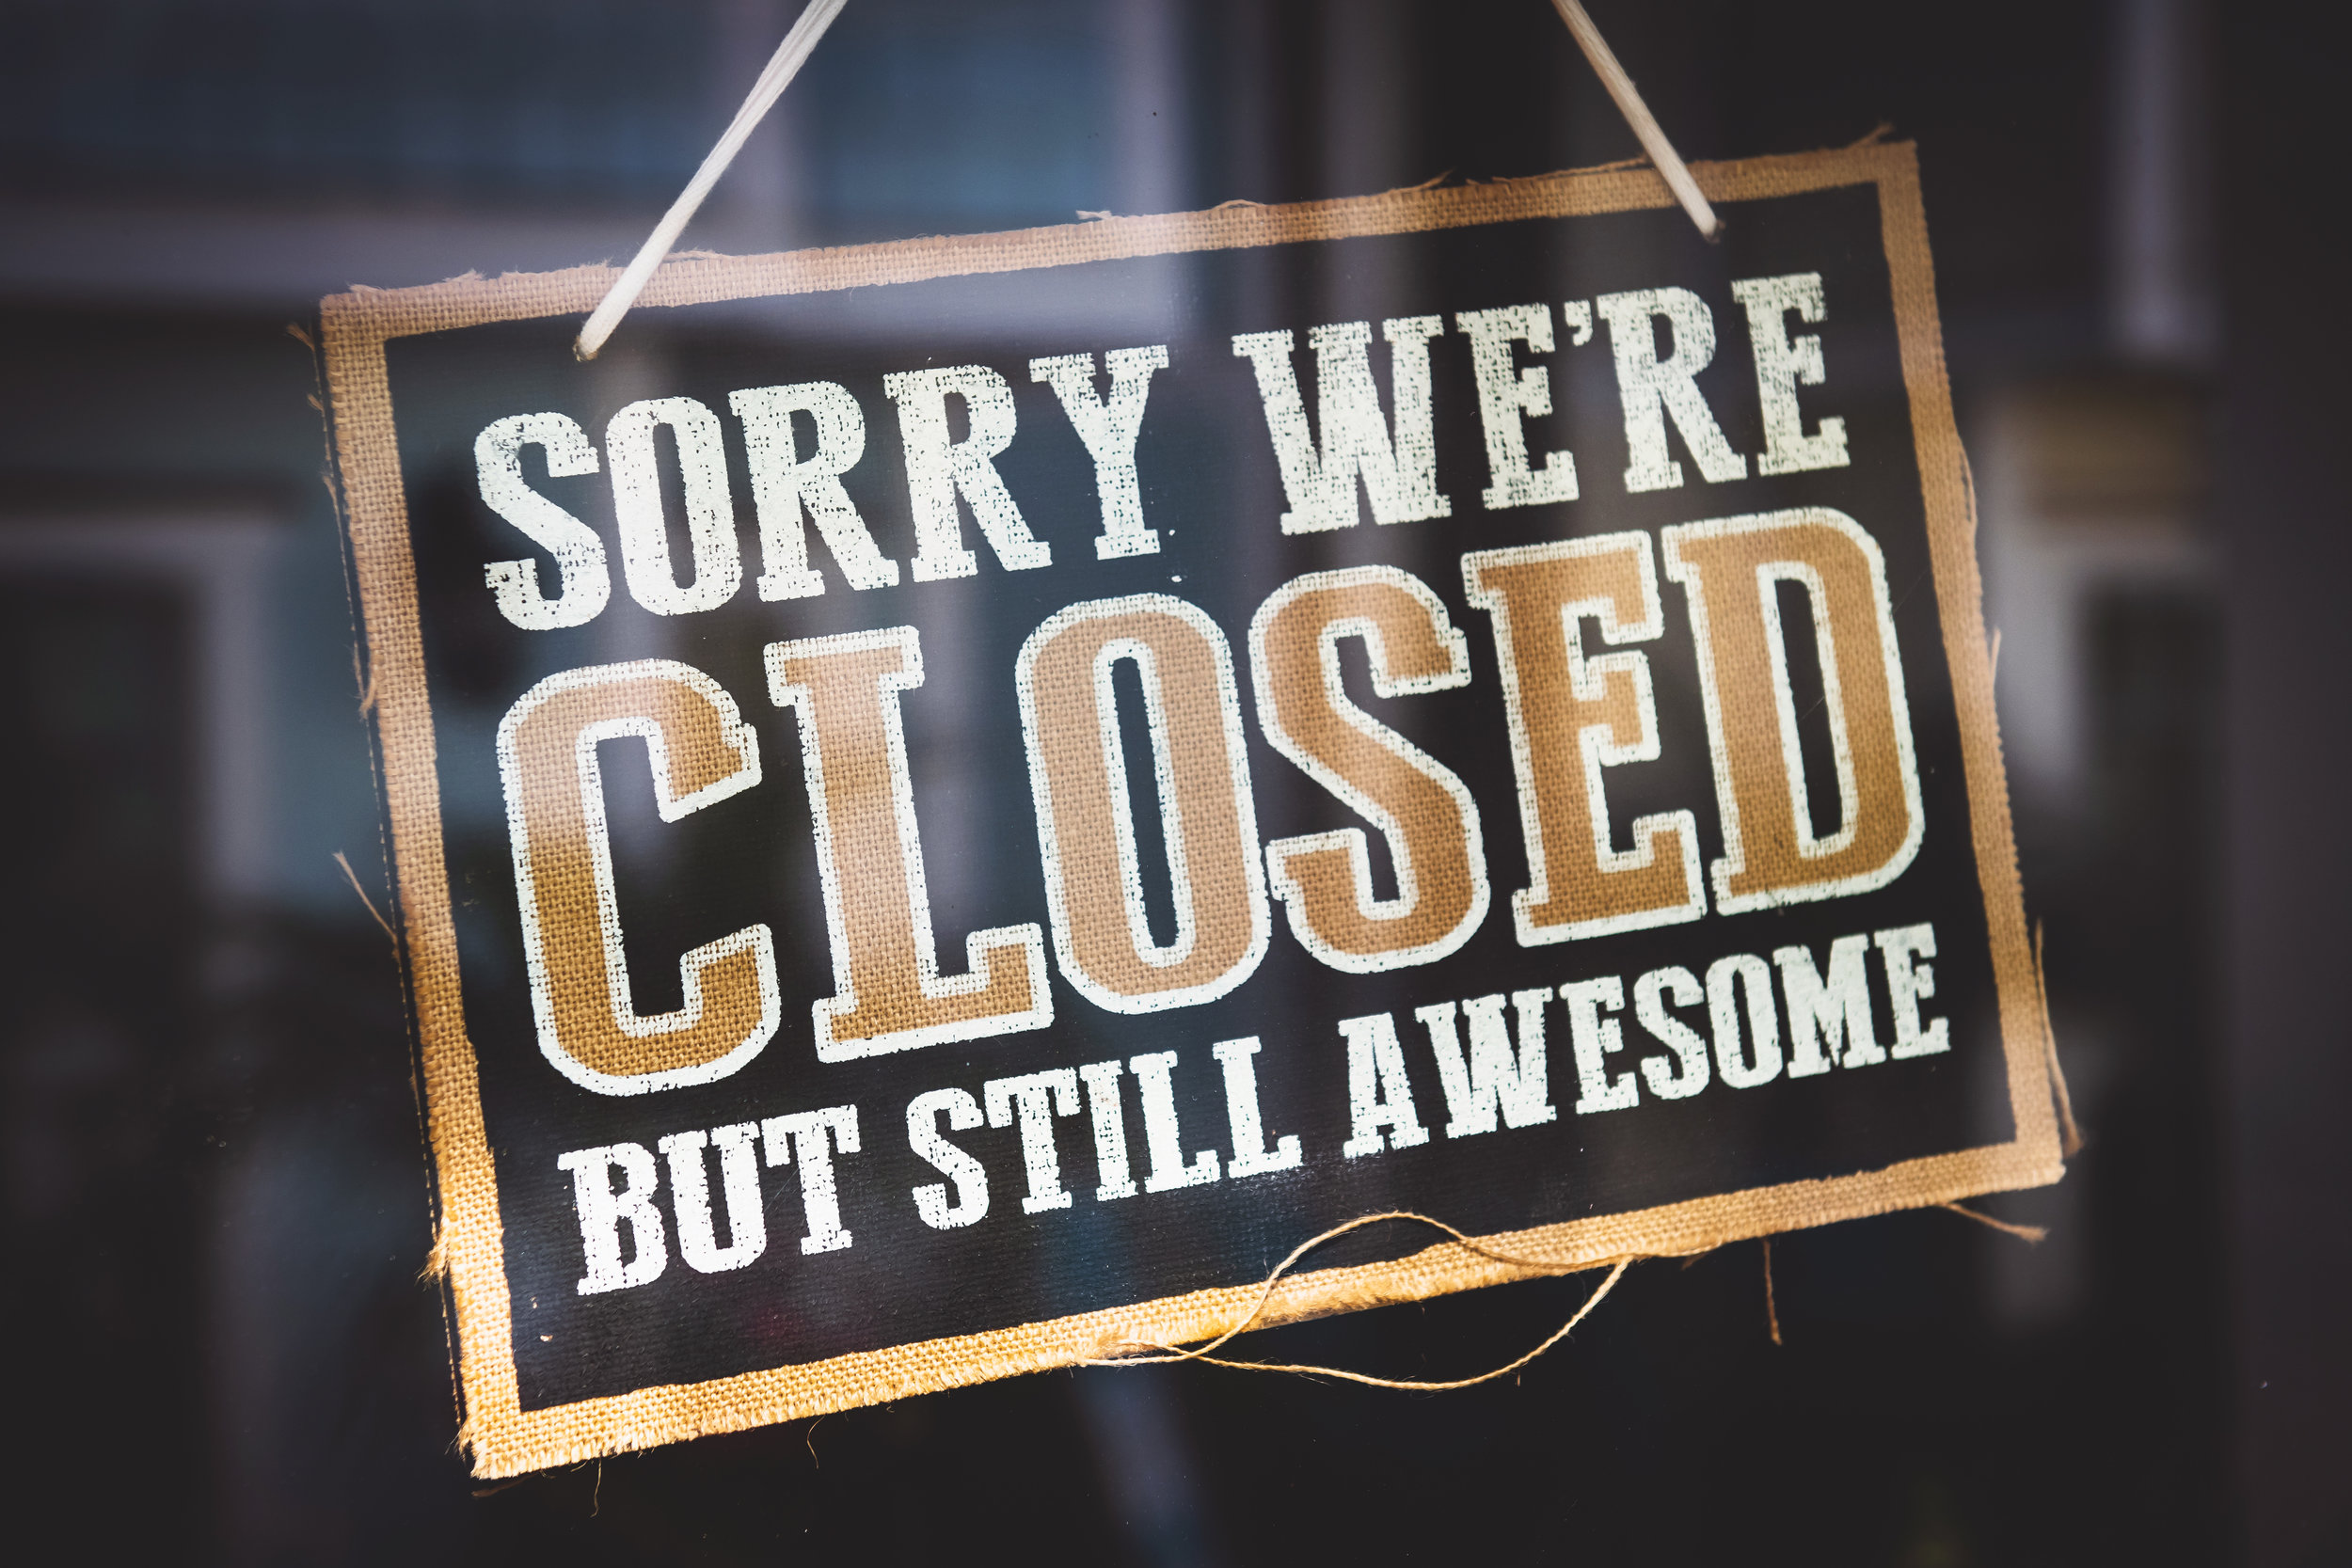 Indefinitely Closed - Due to personal reasons, we have had to close our store. We still have limited stock of old boxes available for purchase but will no longer be accepting new subscriptions. Thank you so much for your support.